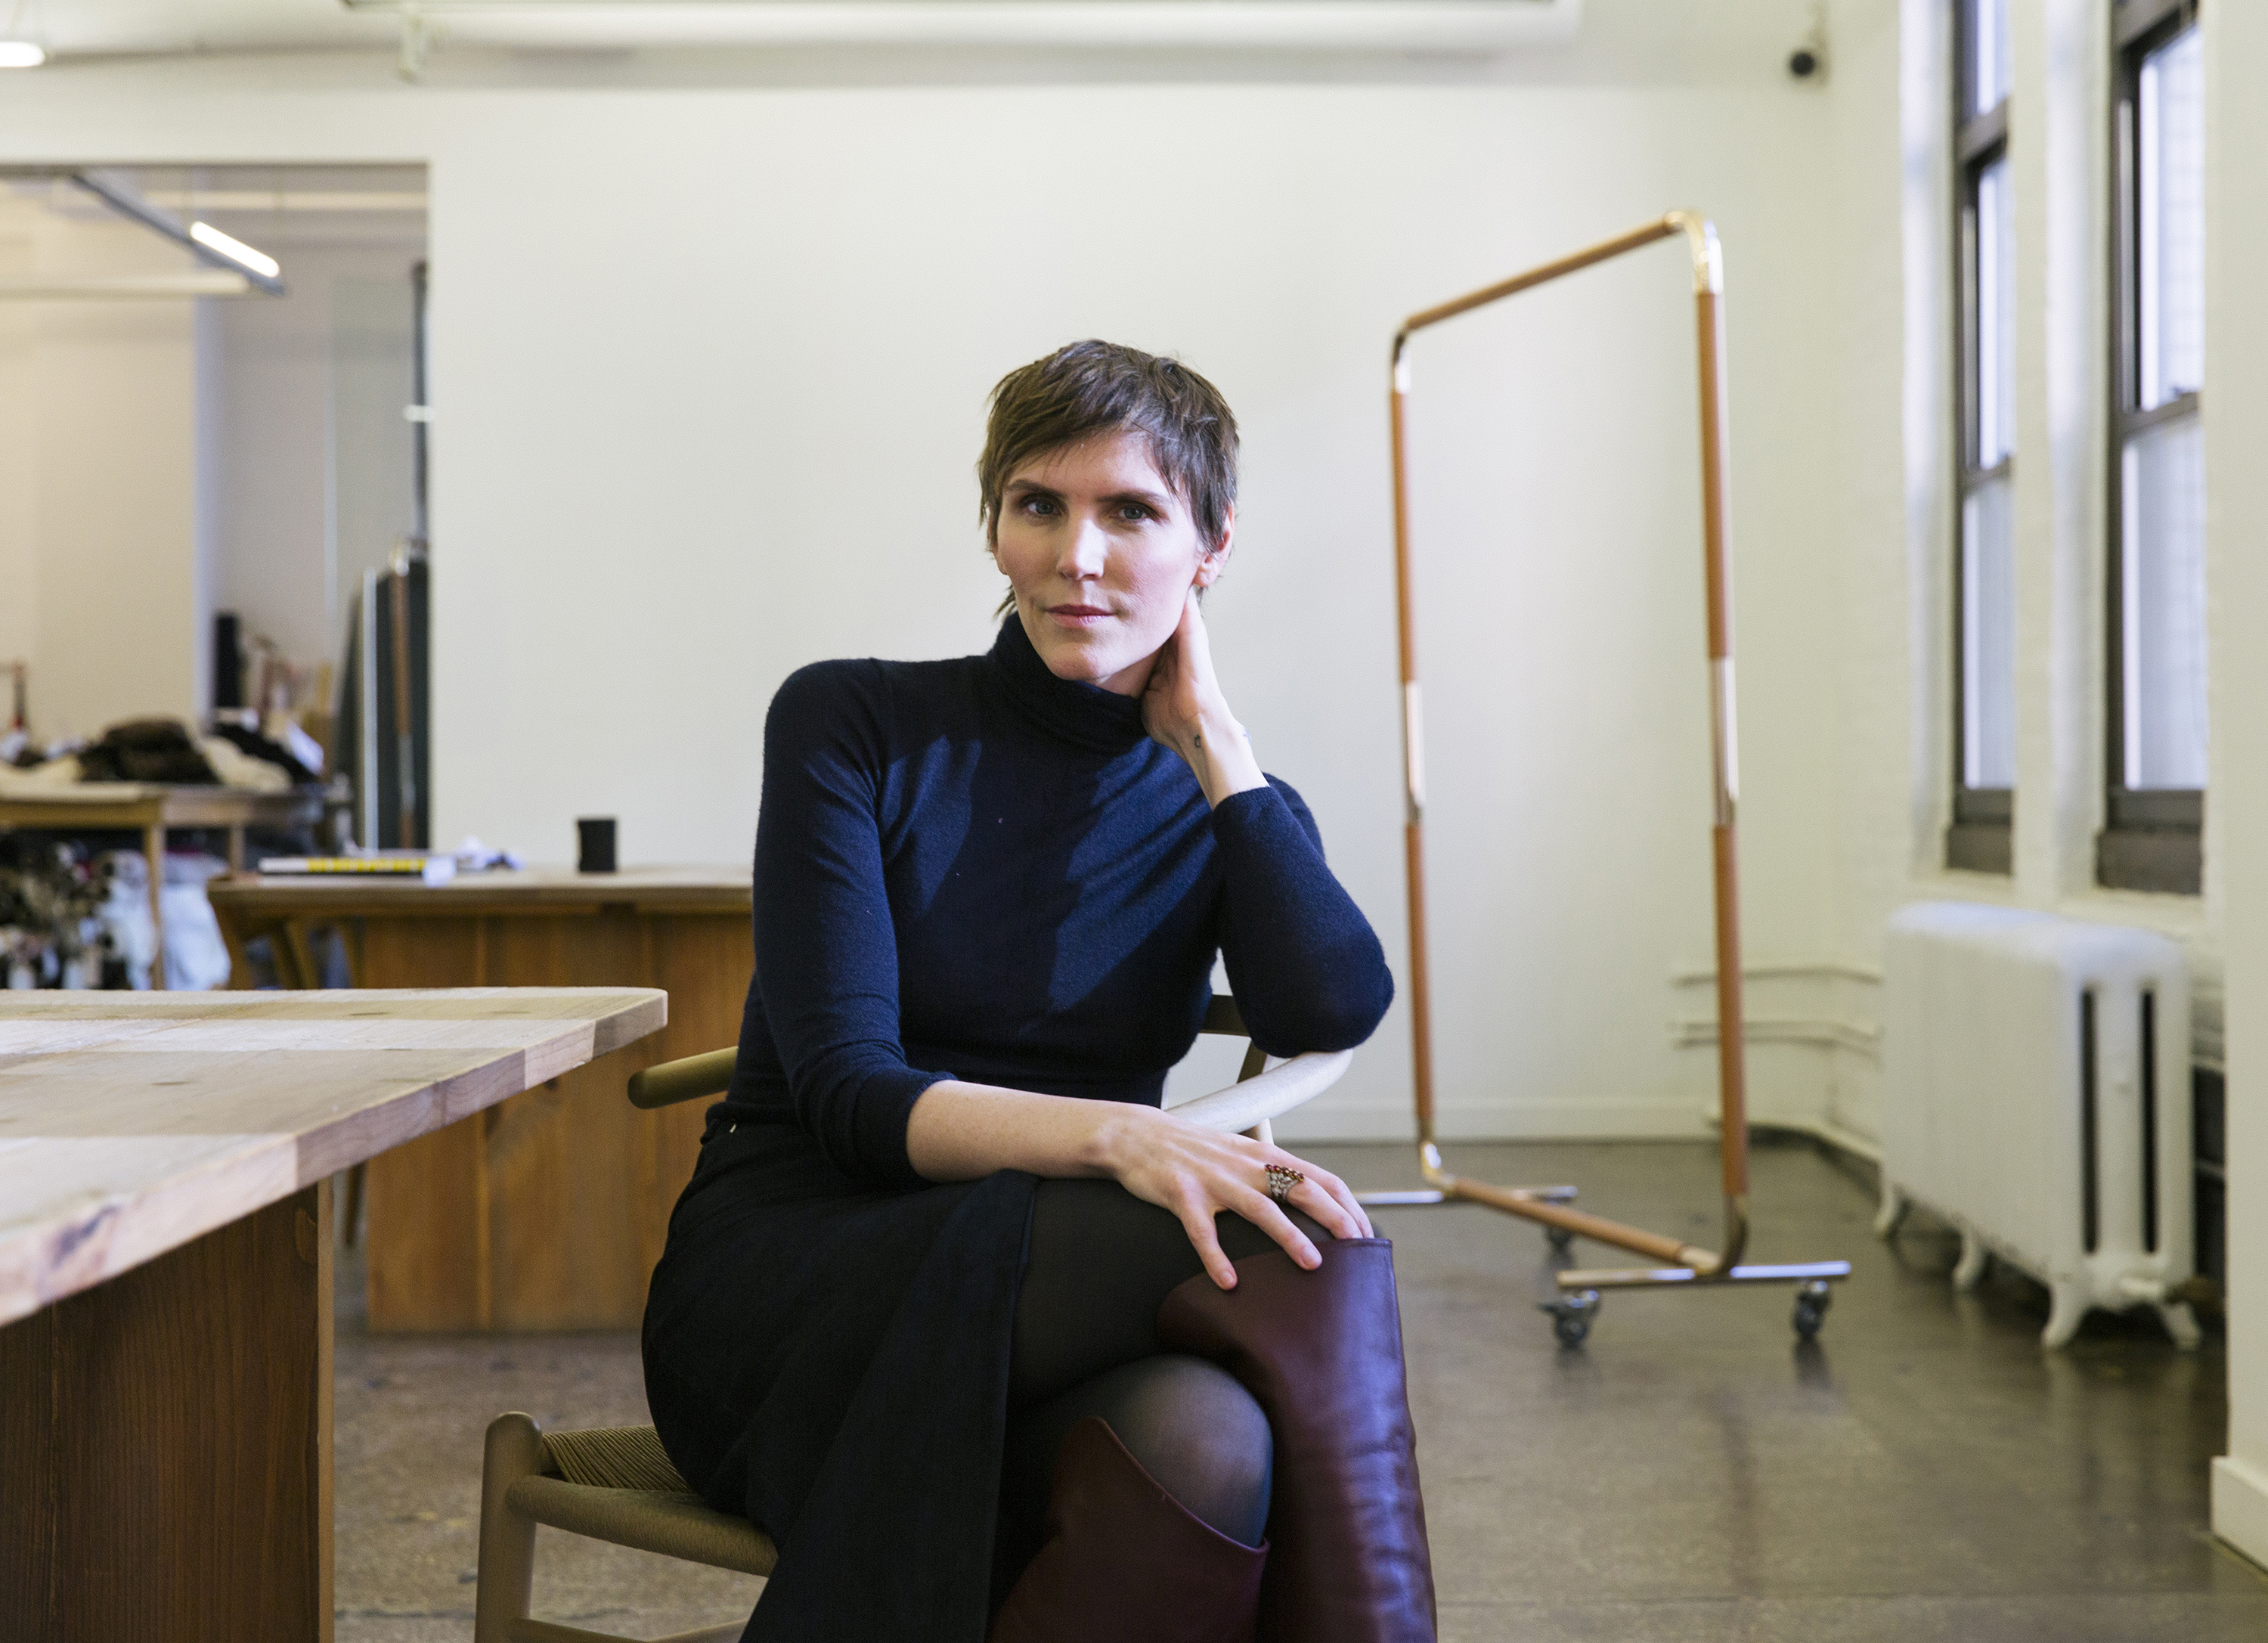 Fashion designer Gabriela Hearst wants to make clothes that become hand-me-downs, not castoffs. MUST CREDIT: Photo for The Washington Post by Ben Sklar